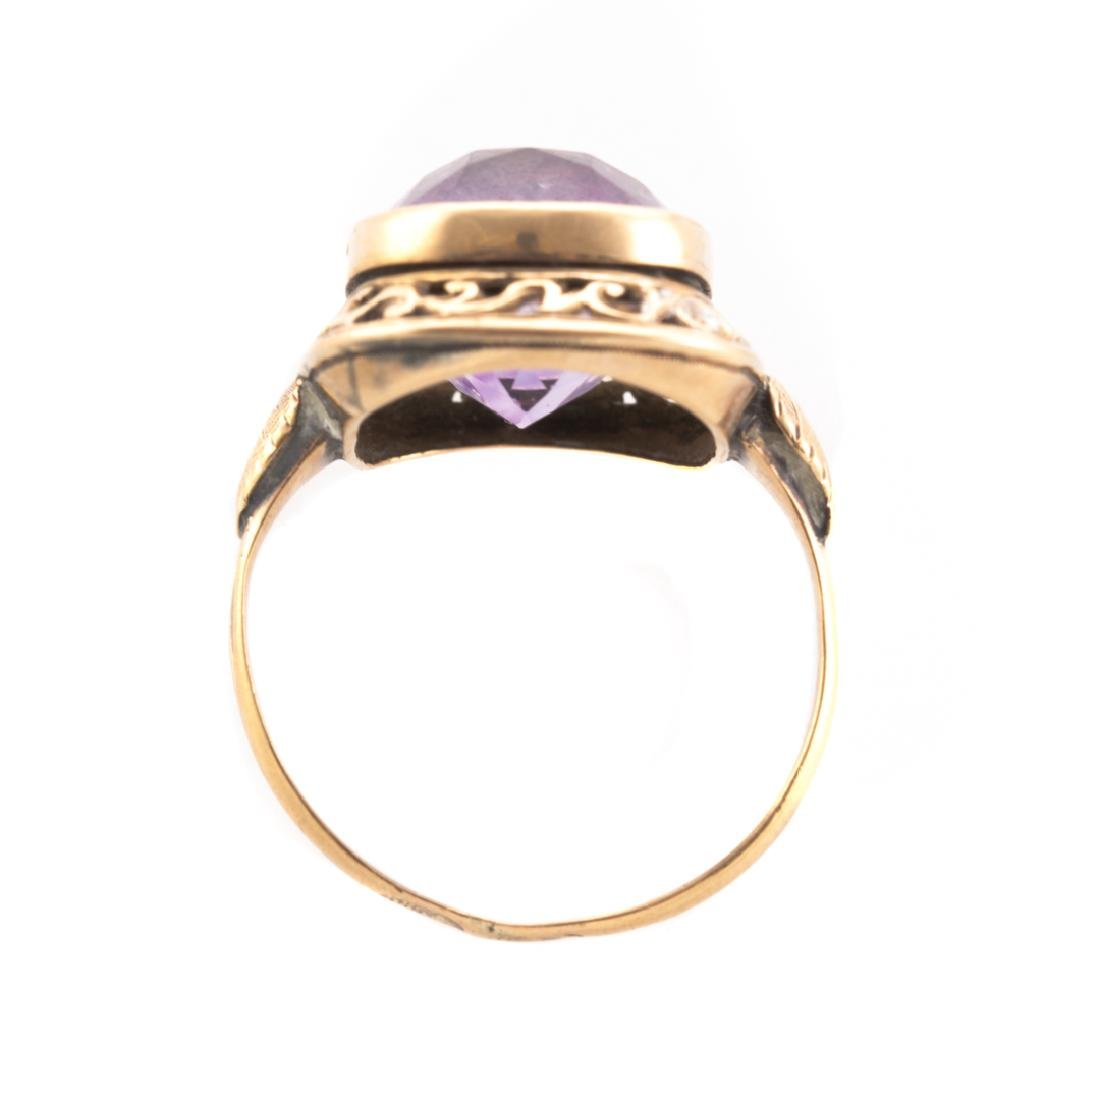 A Victorian Amethyst Ring in Gold - 3